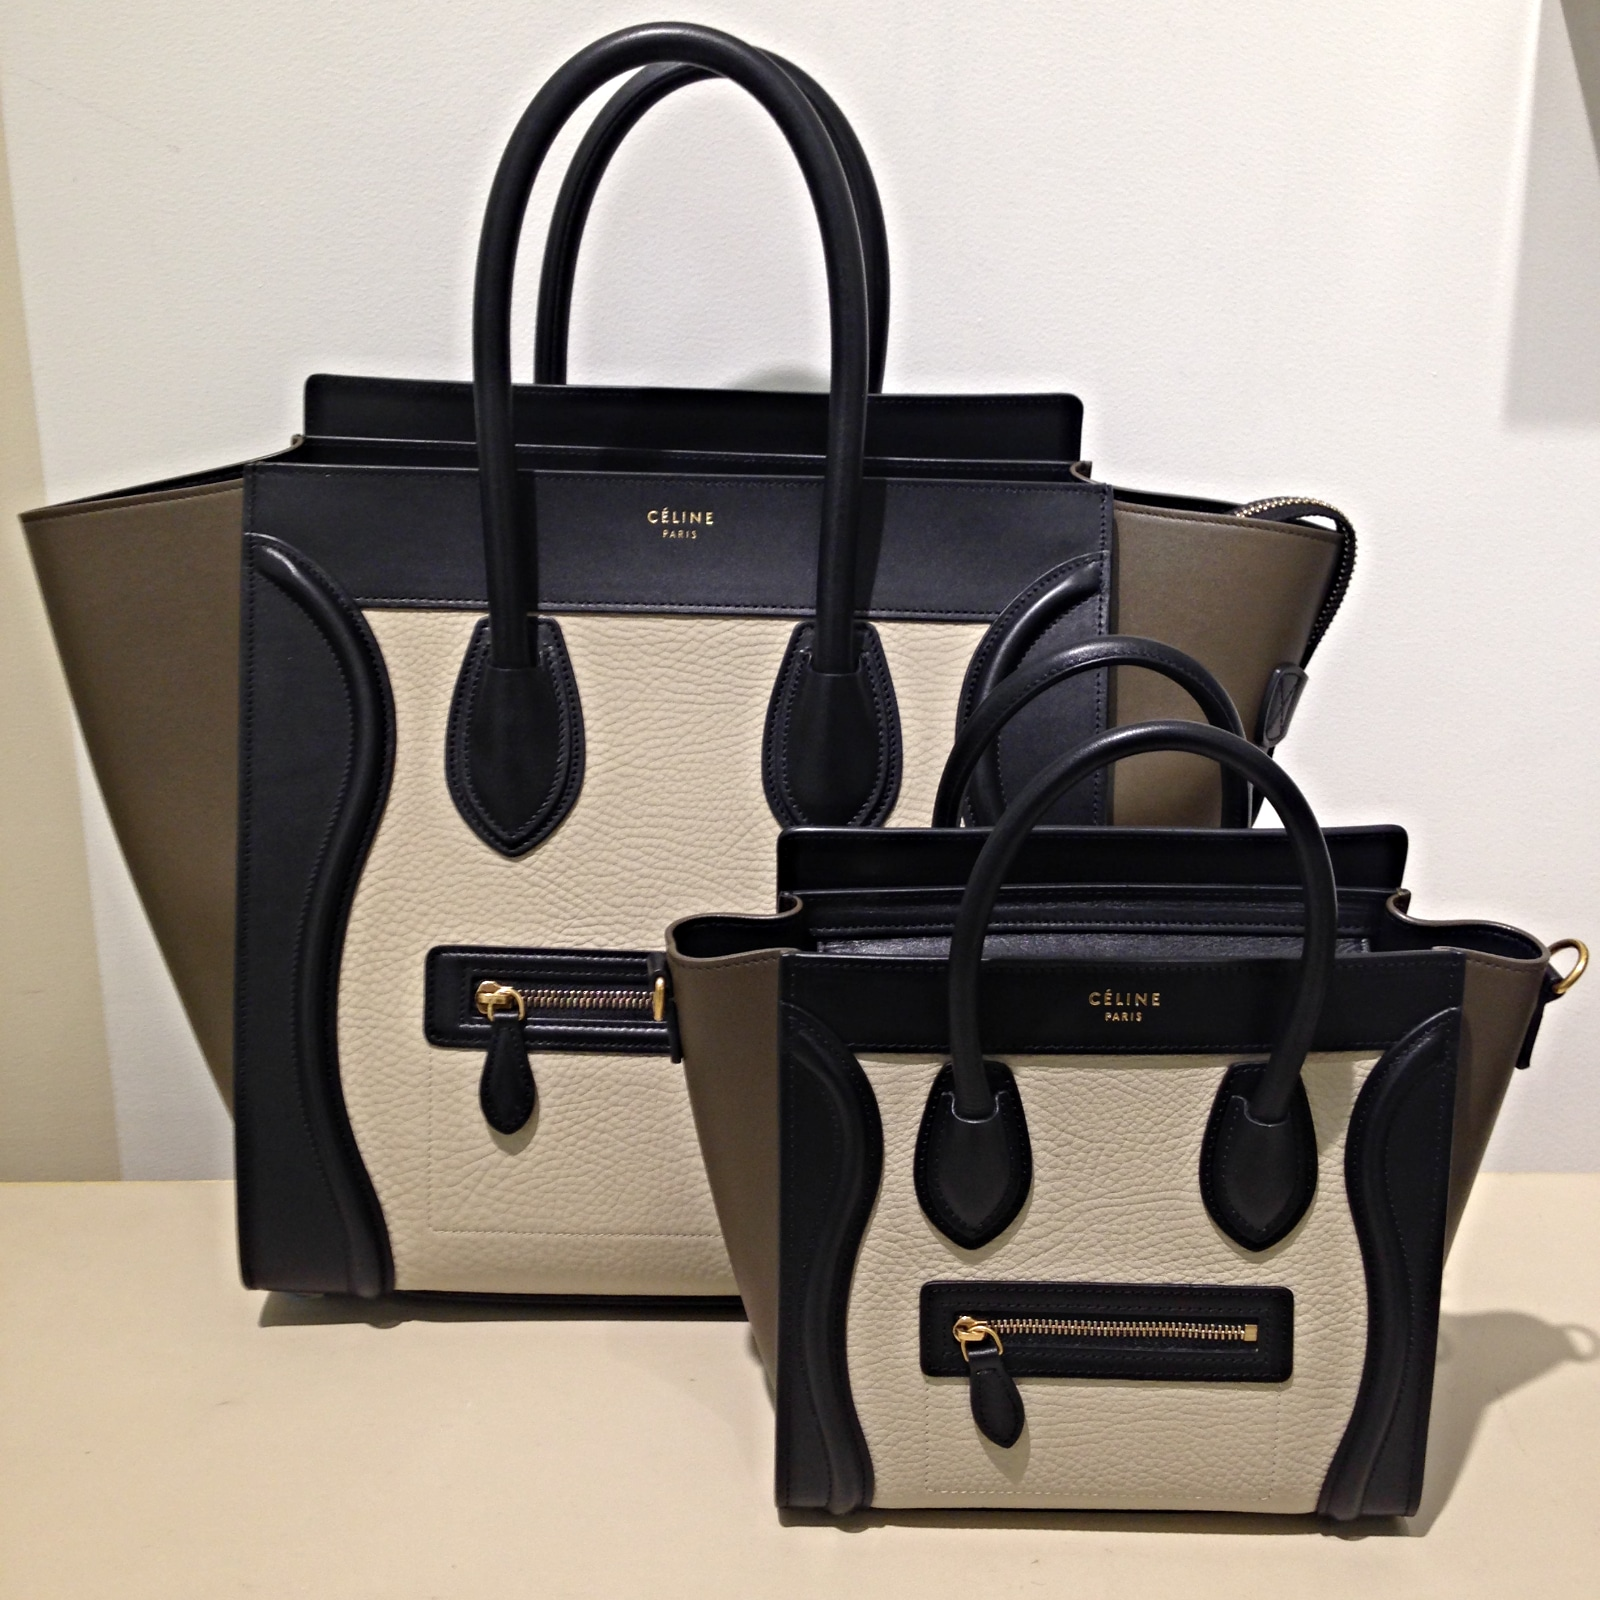 106468a5b674 Celine Nano Luggage Tote Bag Reference Guide